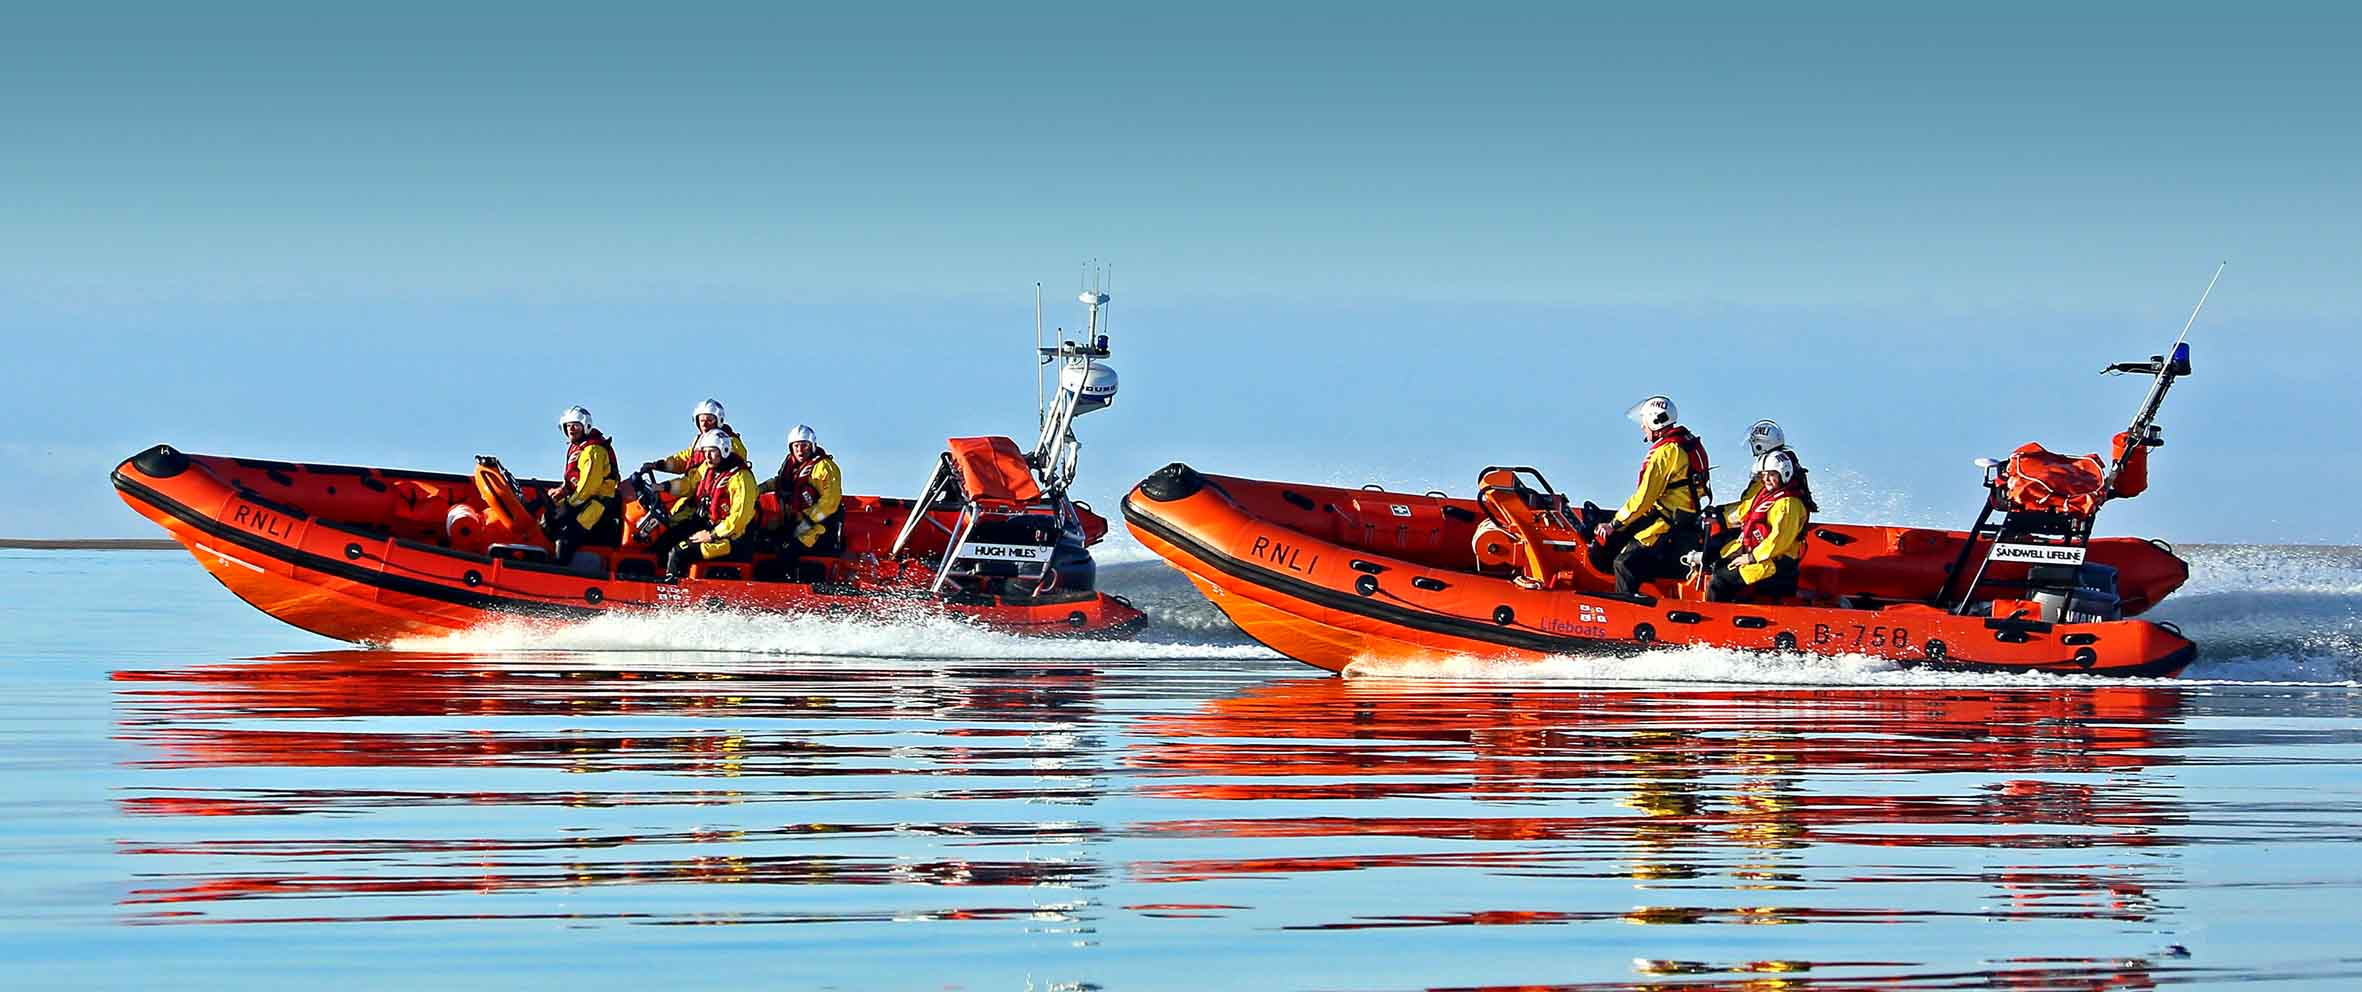 Attached are pictures of Aberdyfi RNLI's Atlantic 75 lifeboat Sandwell Lifeline and the station's new Atlantic 85 class lifeboat Hugh Miles on a final training exercise before the Sandwell Lifeline leaves Aberdyfi.